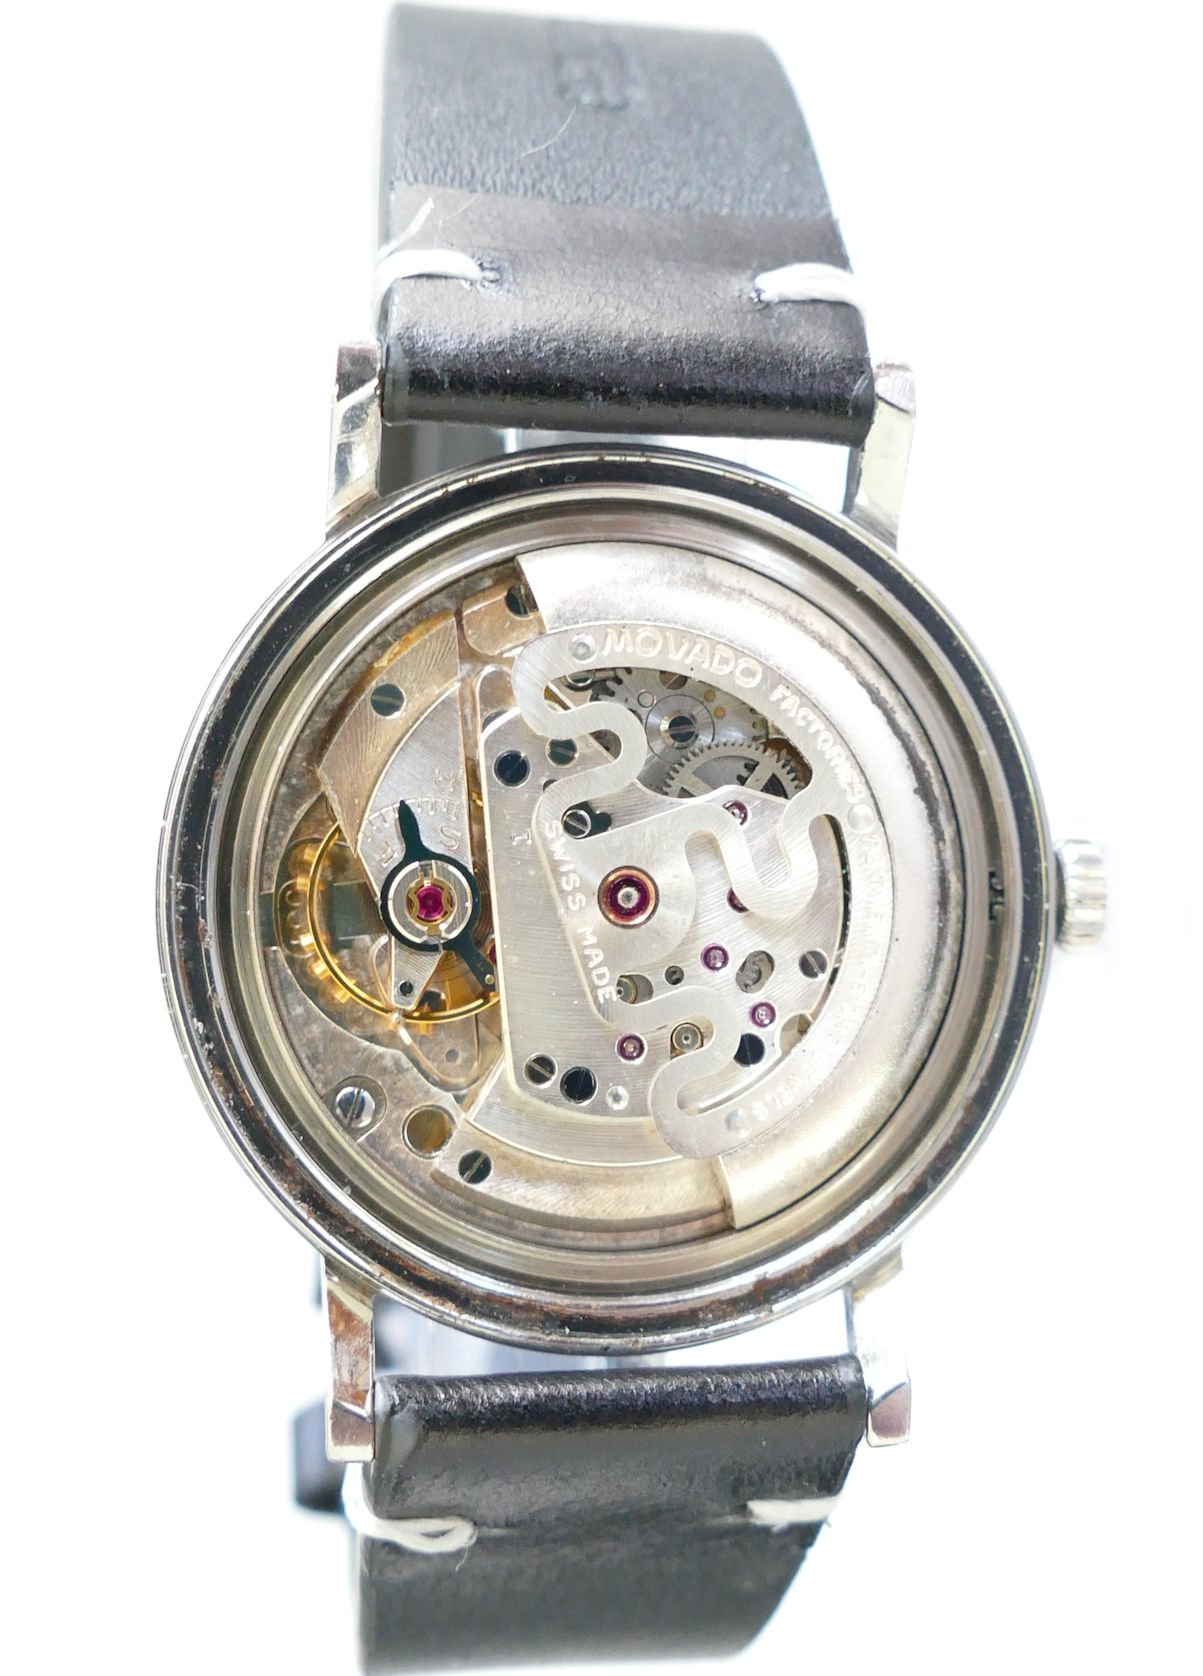 Movado Kingmatic second hand prices - Collector Square